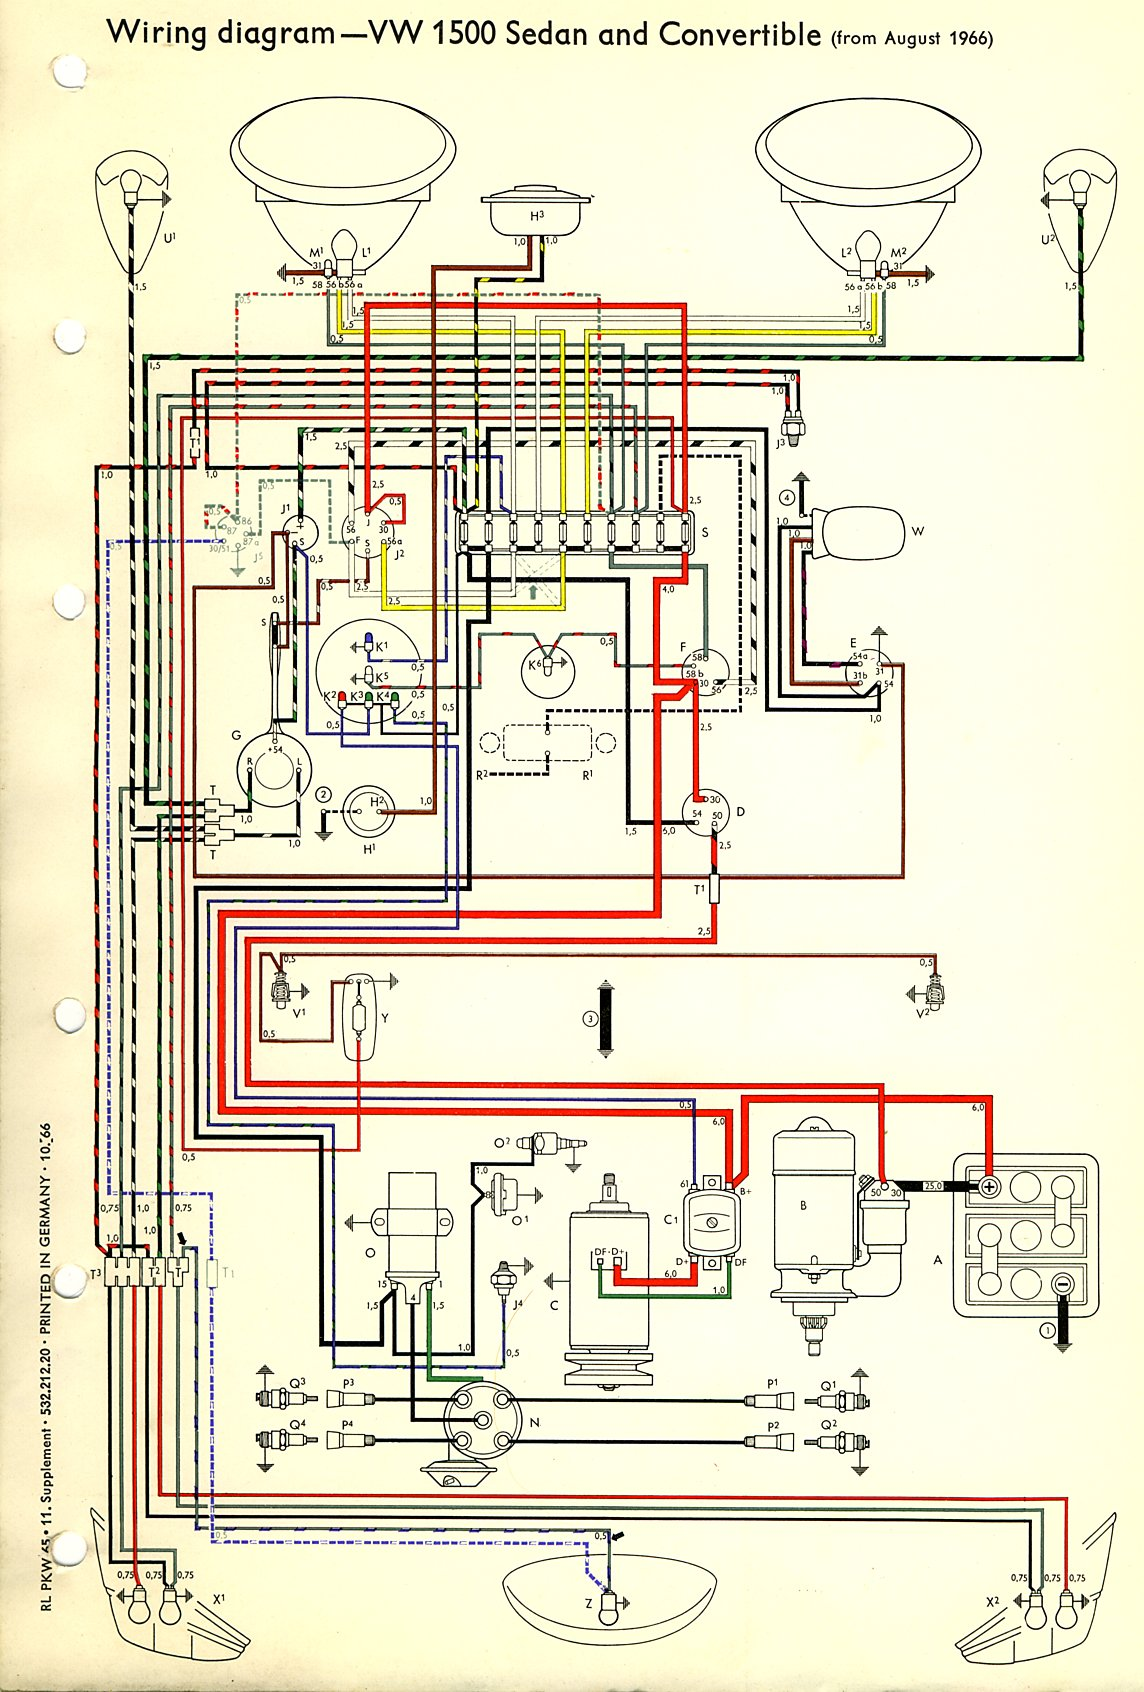 bug_67 1967 beetle wiring diagram thegoldenbug com 76 vw beetle wiring diagram at edmiracle.co